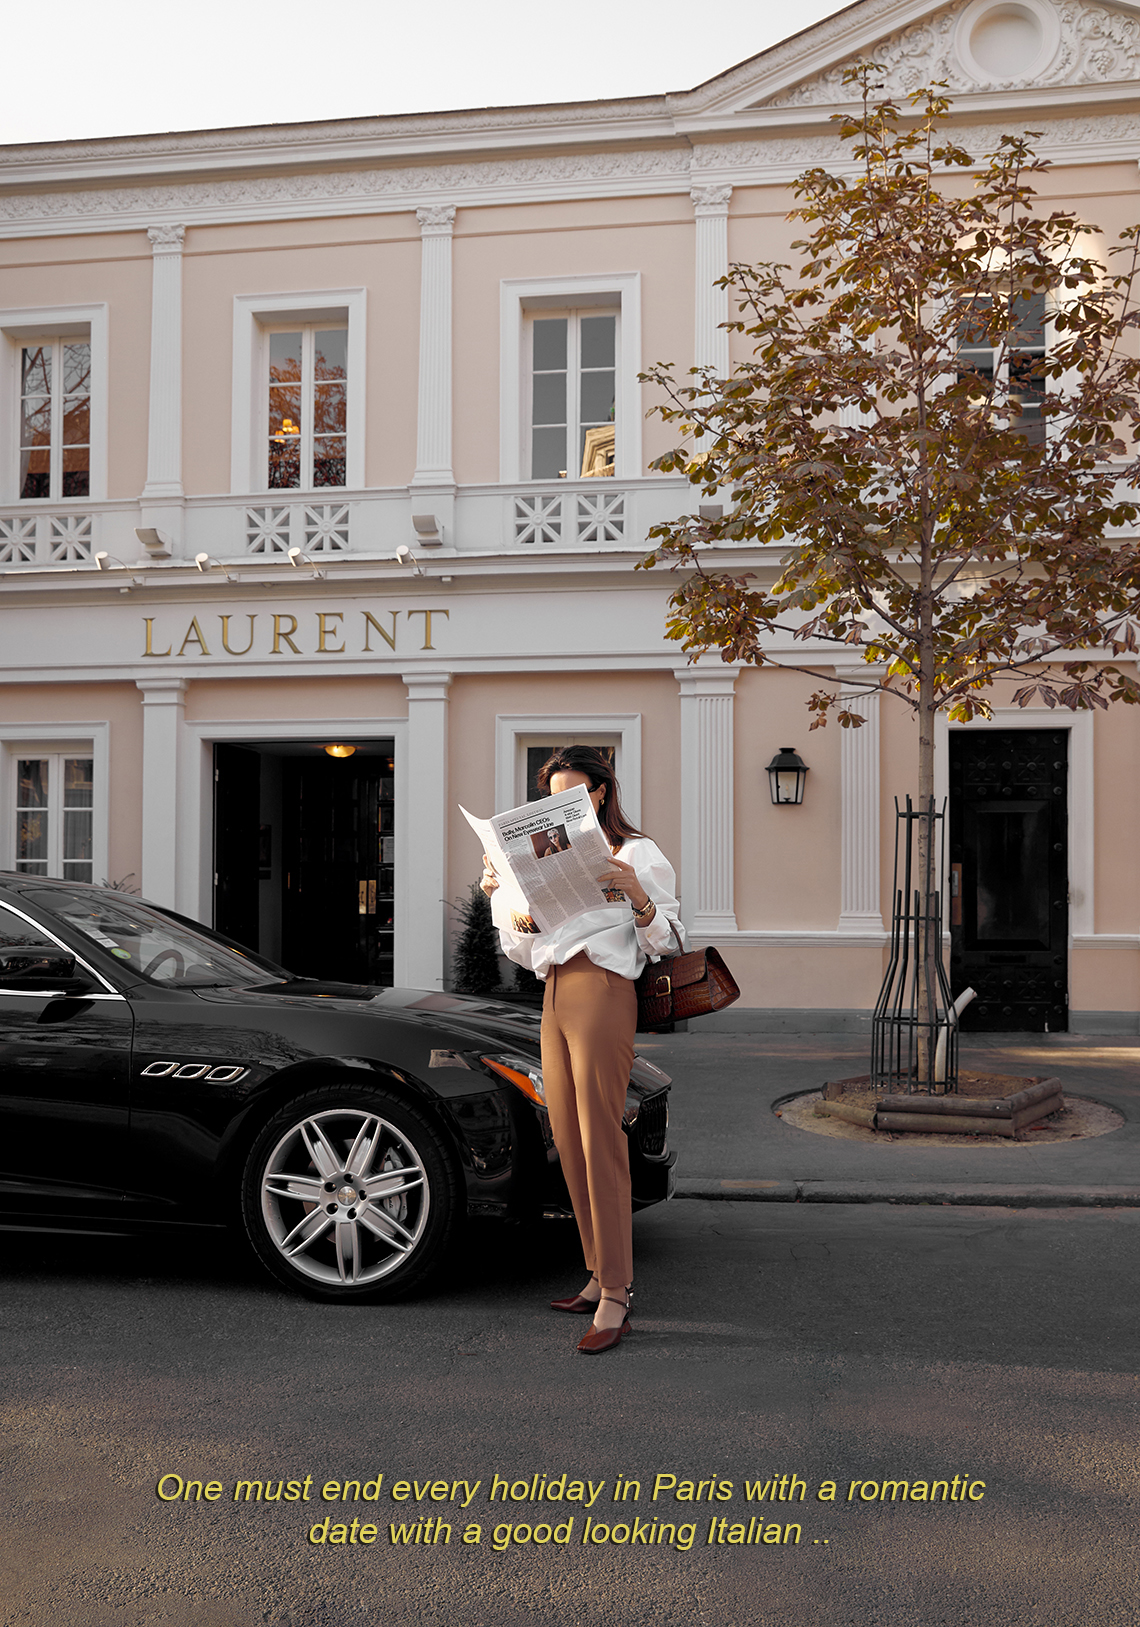 Maserati, Paris, Fashion, Week, Oracle, fox, photo diary, paris